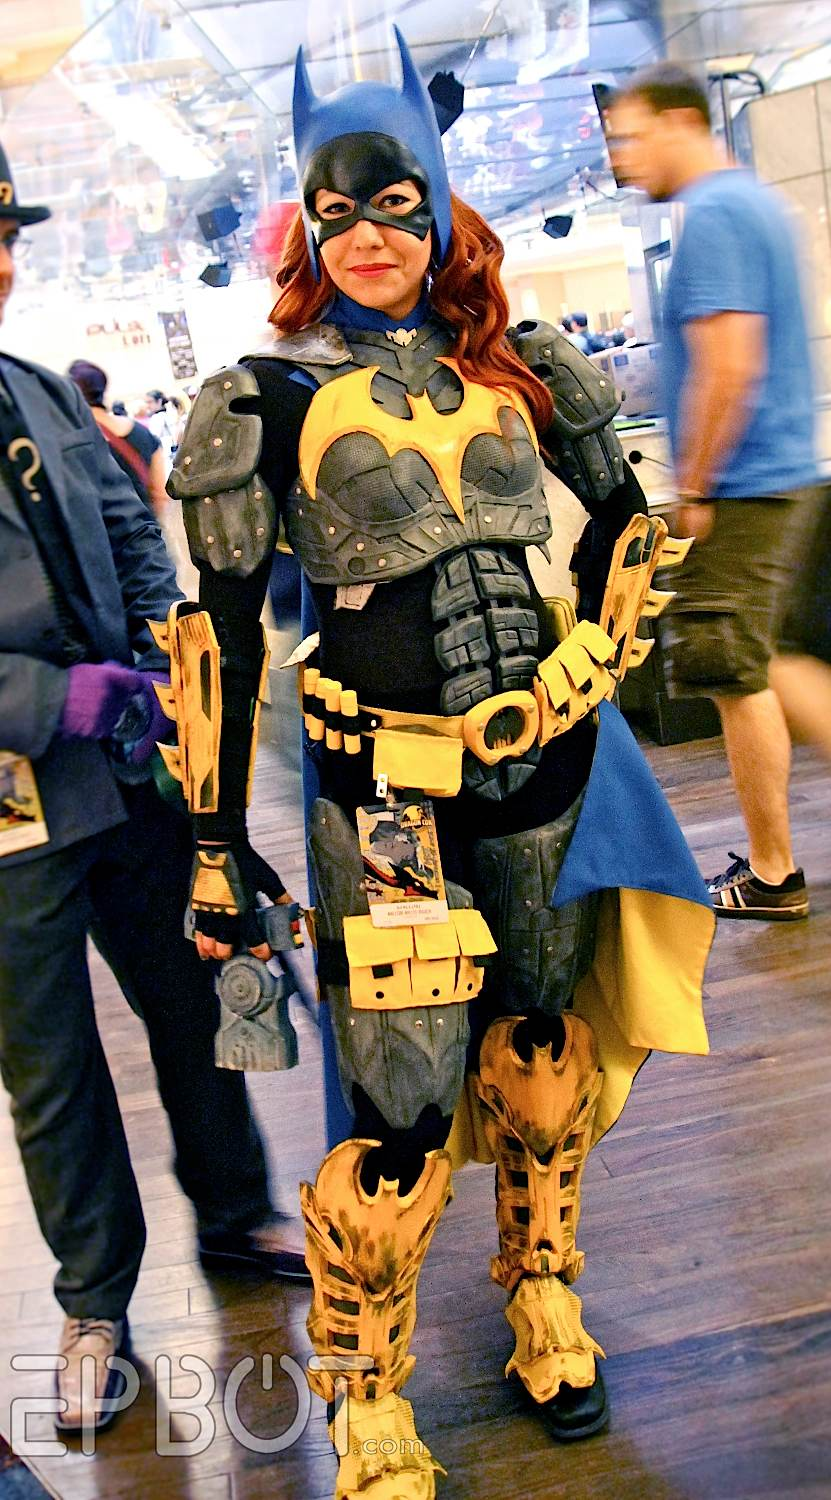 Epbot the best cosplay of dragon con 2014 pt 1